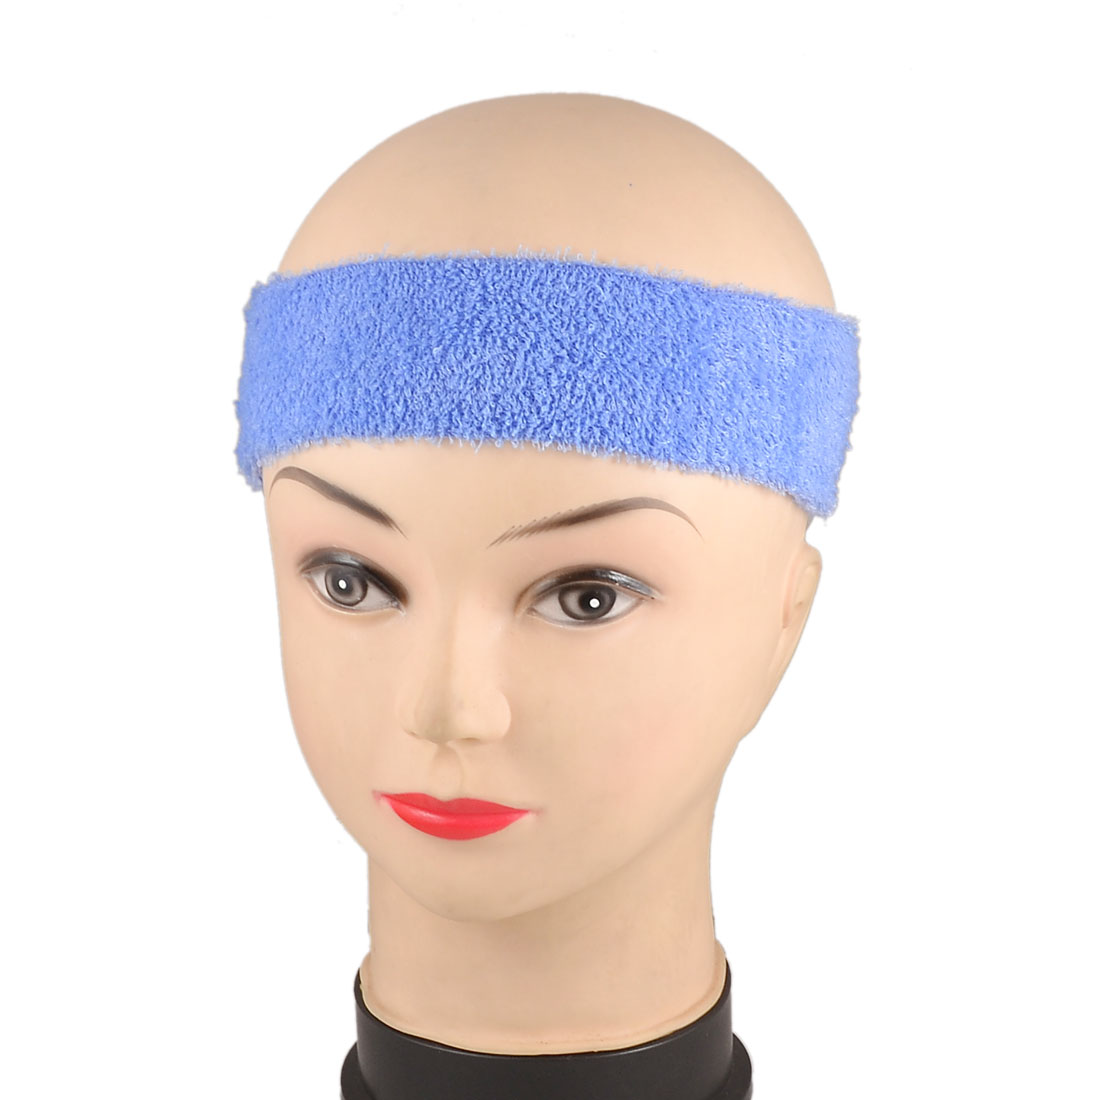 2 Pcs Spa Bathing Fringe Bang Holder Hair Band Stretchy Headband Light Blue for Women